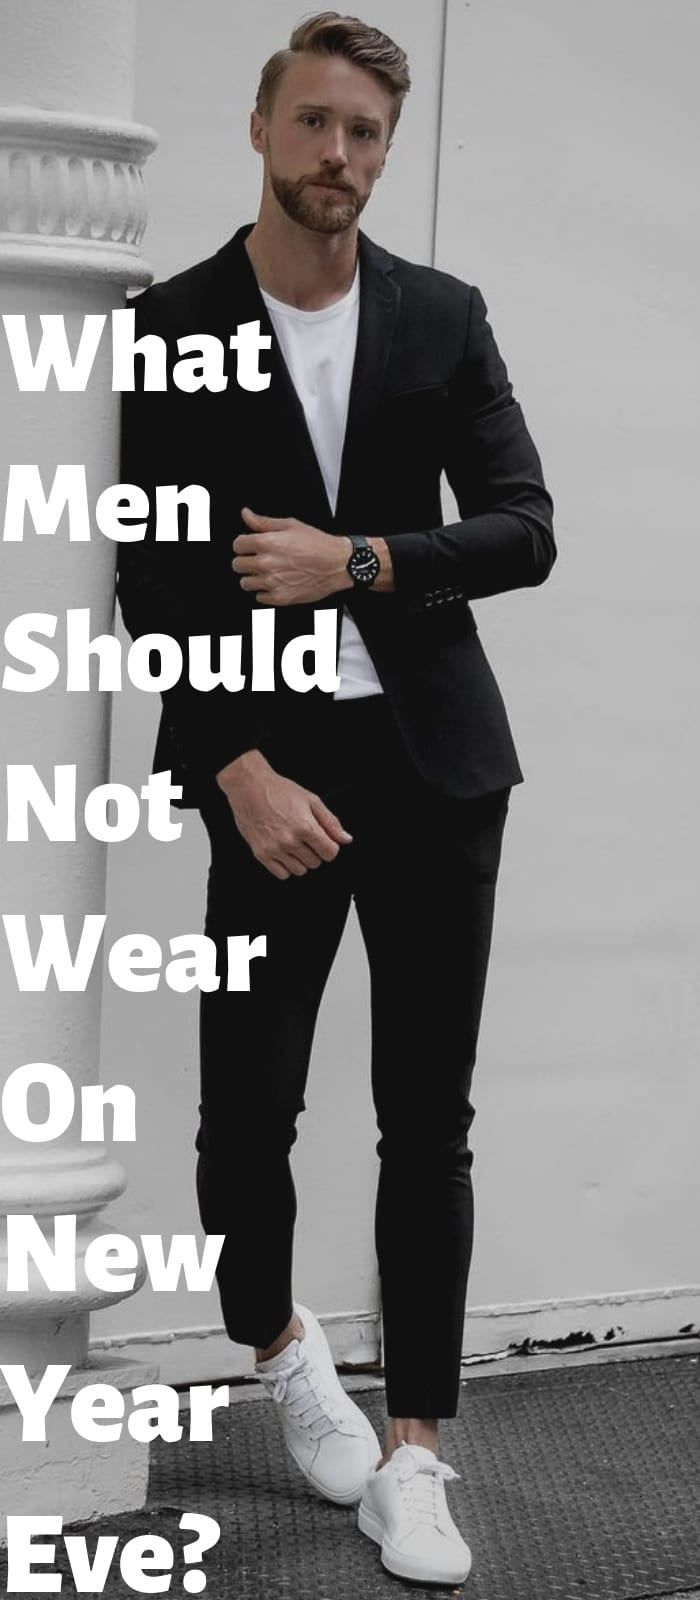 What Men Should Not Wear On New Year Eve.